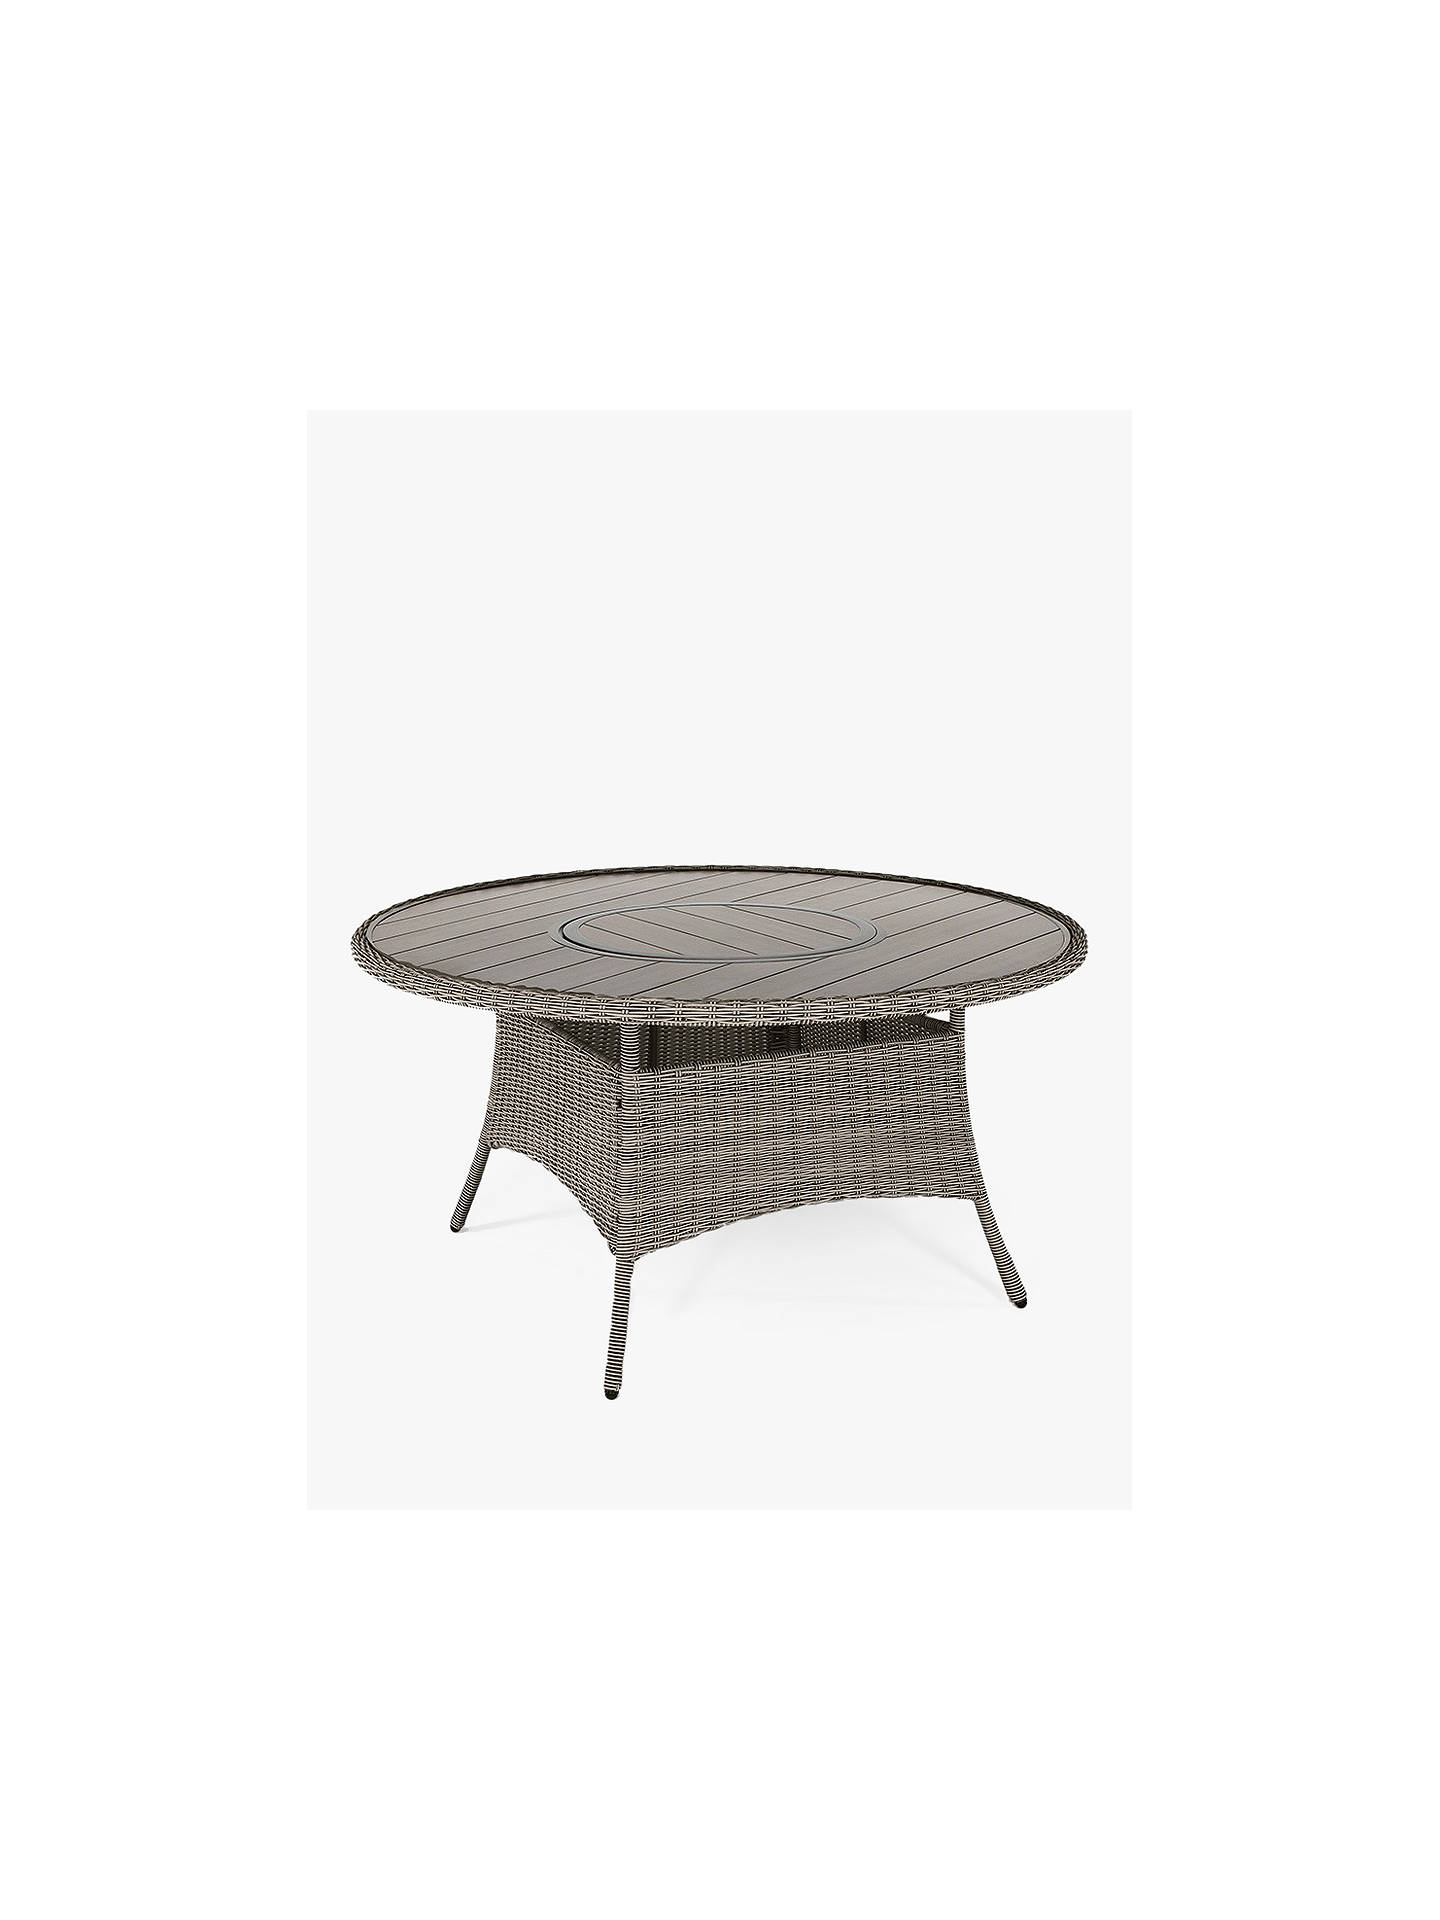 Buy KETTLER Palma 6-Seater Round Garden Dining Table & Chairs Set, Rattan Online at johnlewis.com